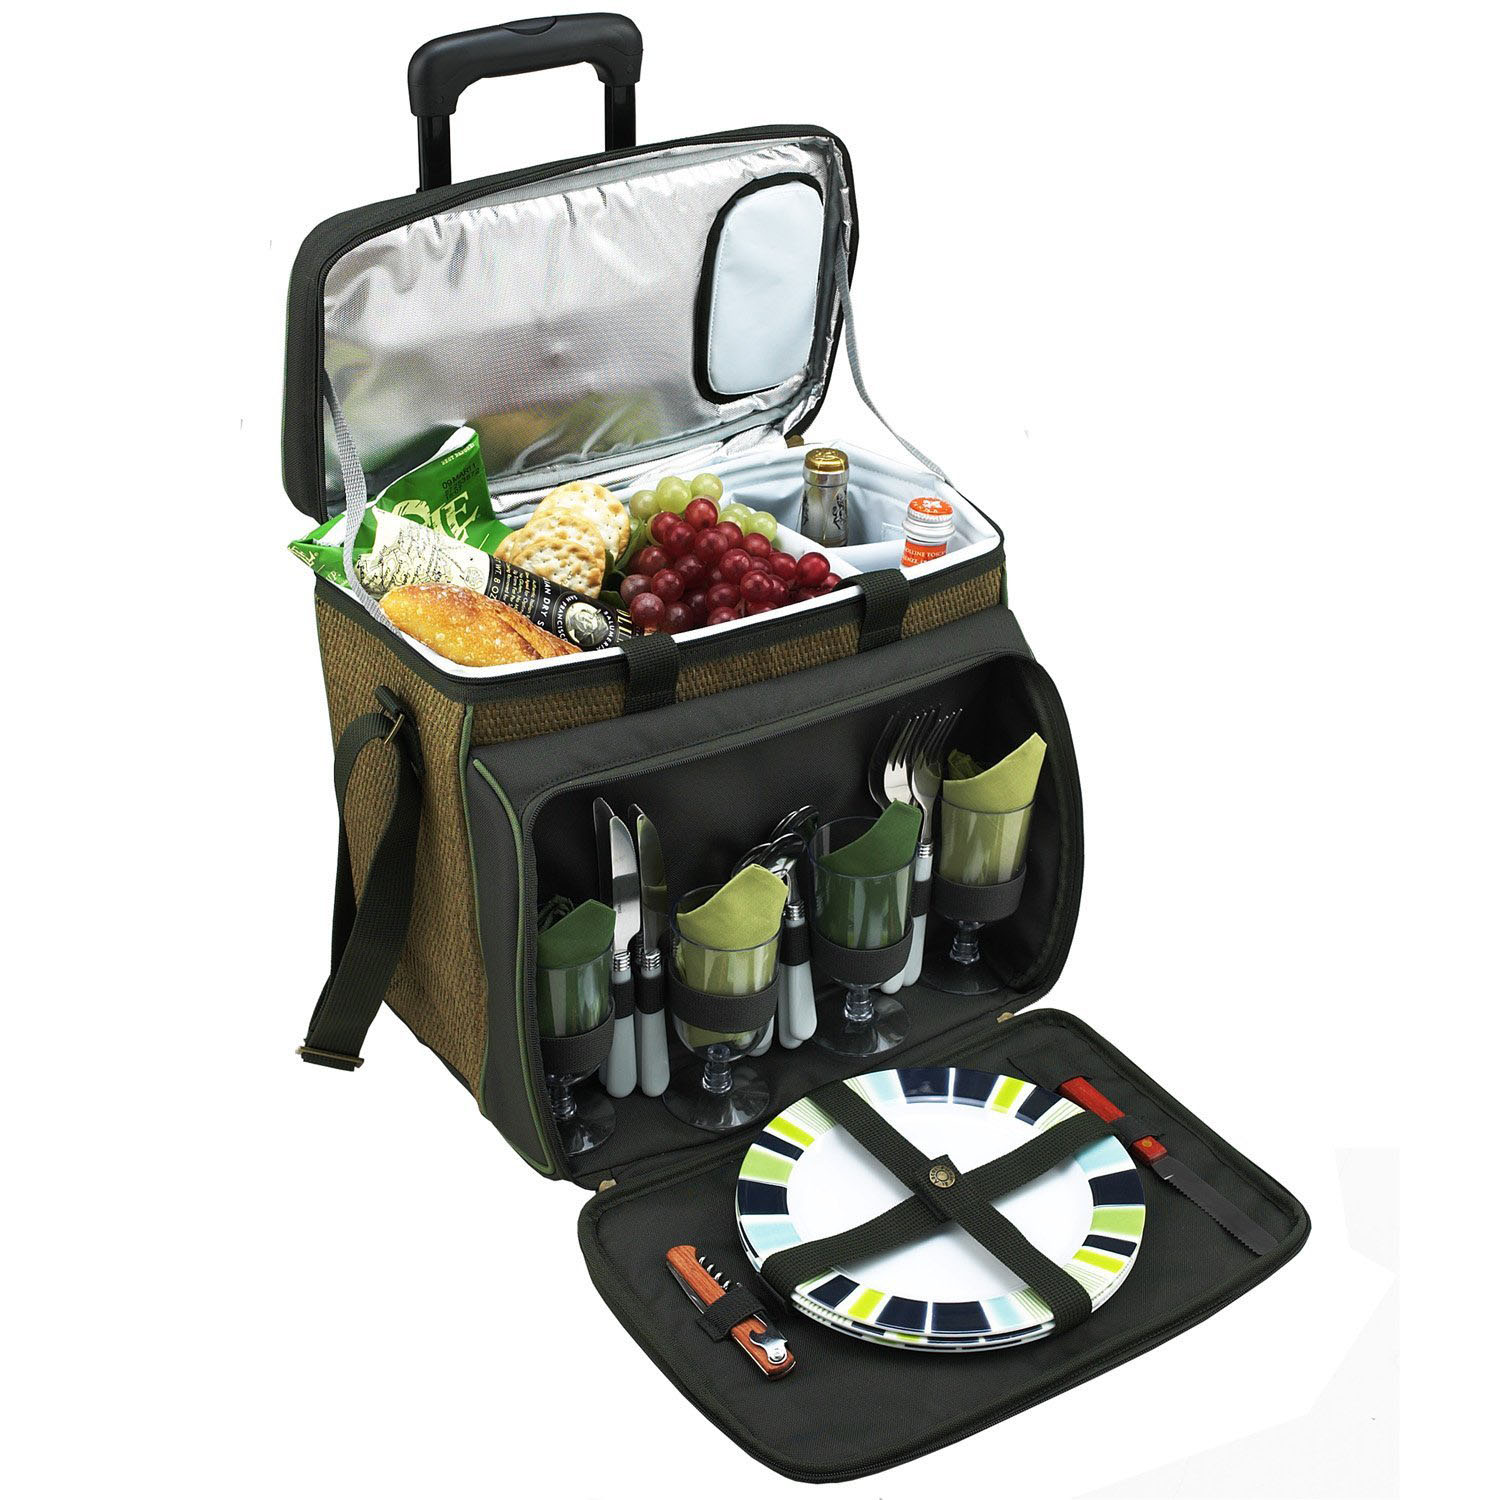 Picnic Backpack Australia Rolling Coolers Home Decorator Shop